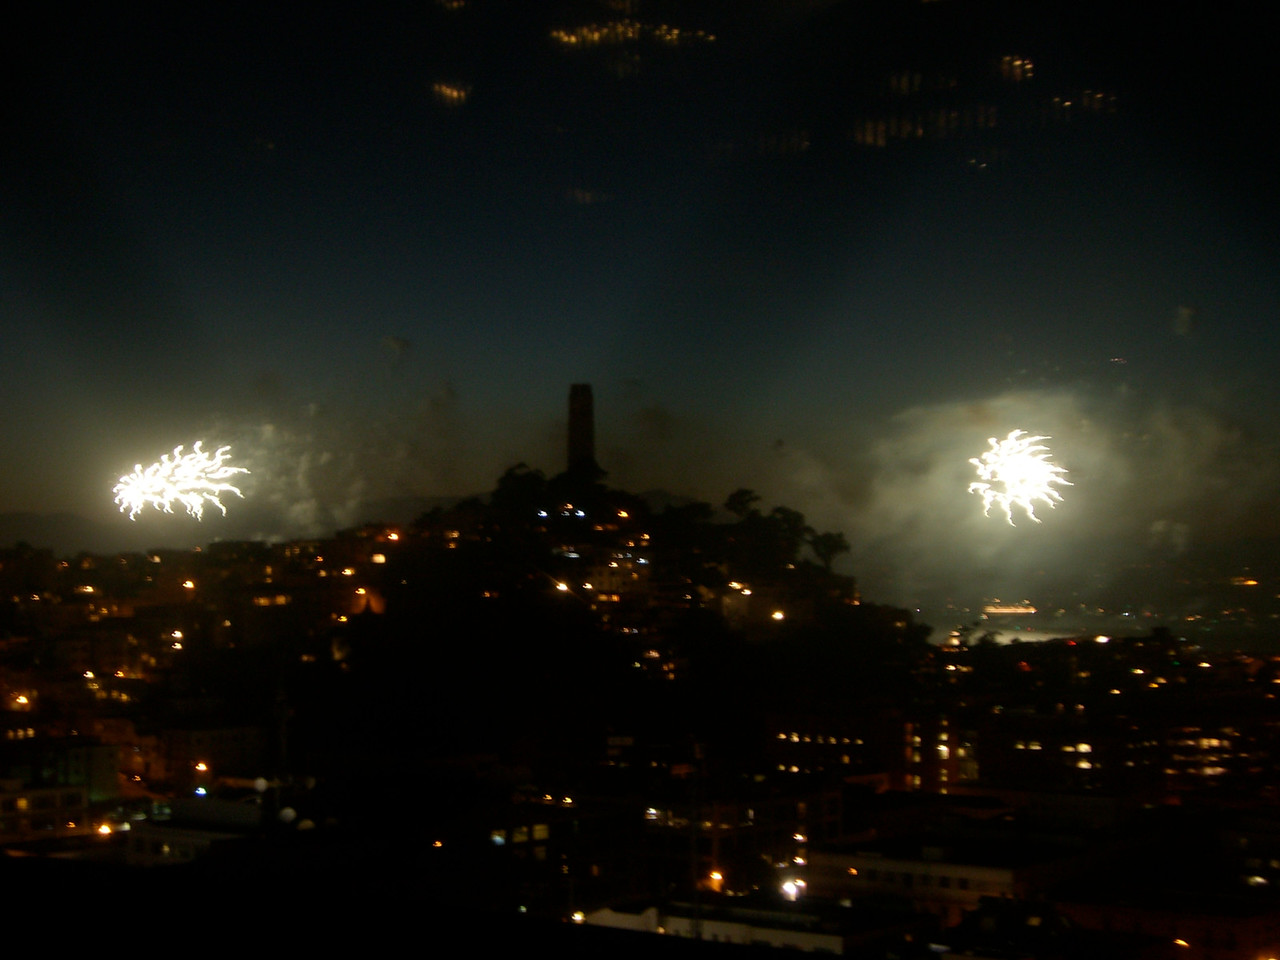 2006 07 04 Tue - Fireworks from Jane's rooftop 2